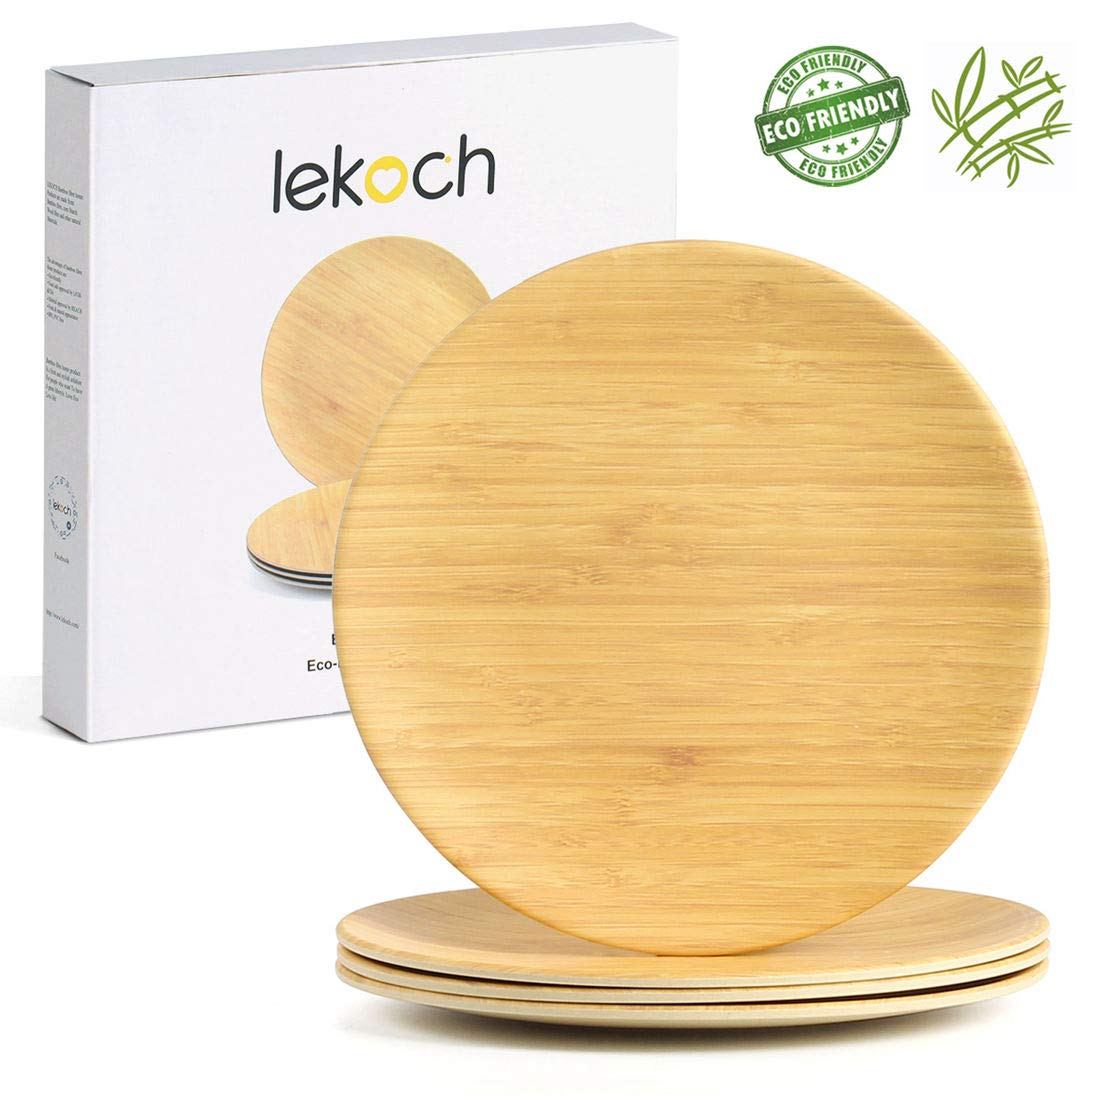 Lekoch Bamboo Plates | Eco-friendly & Reusable Dinnerware Sets for Home Picnic | BPA Free Dishwasher Safe, Pack of 4